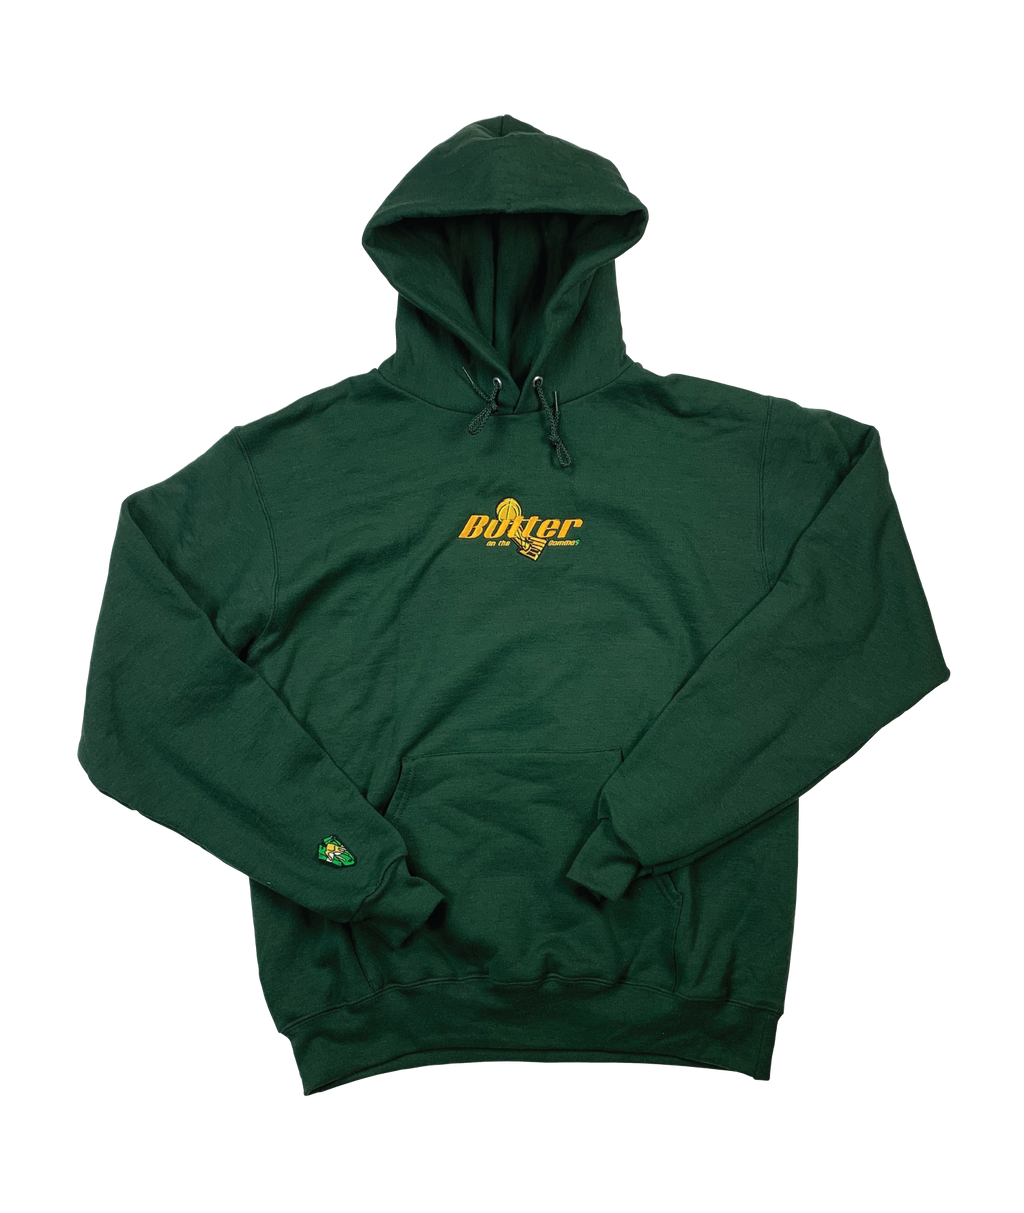 Forest Green Larry O'Butter Hoodie